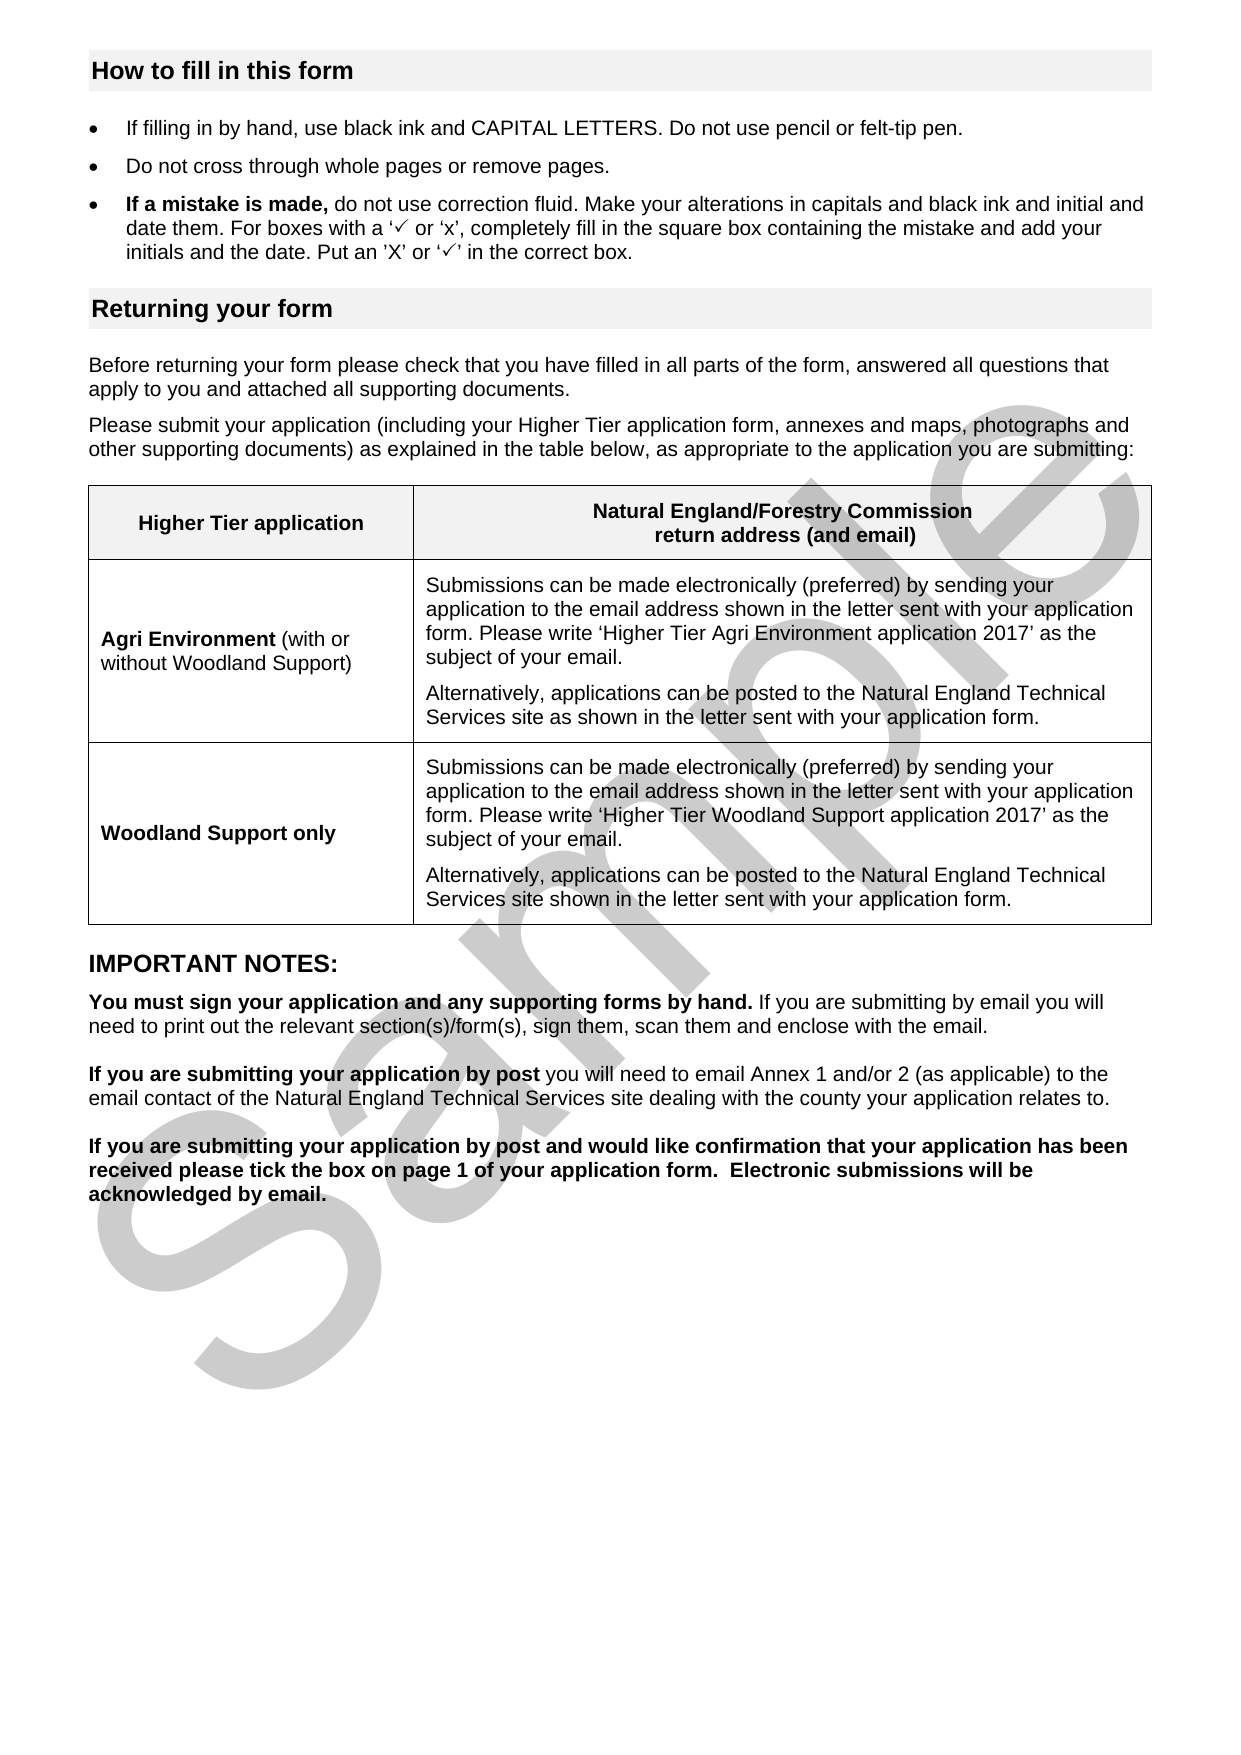 Form explorer on electronic education, email form, statement of purpose form, electronic brochure, electronic programs, ssa disability form, electronic information, chase savings account form, electronic data capture system, electronic resume, electronic payment, electronic courses, electronic notification, electronic newsletter, electronic contacts, x-ray order form,